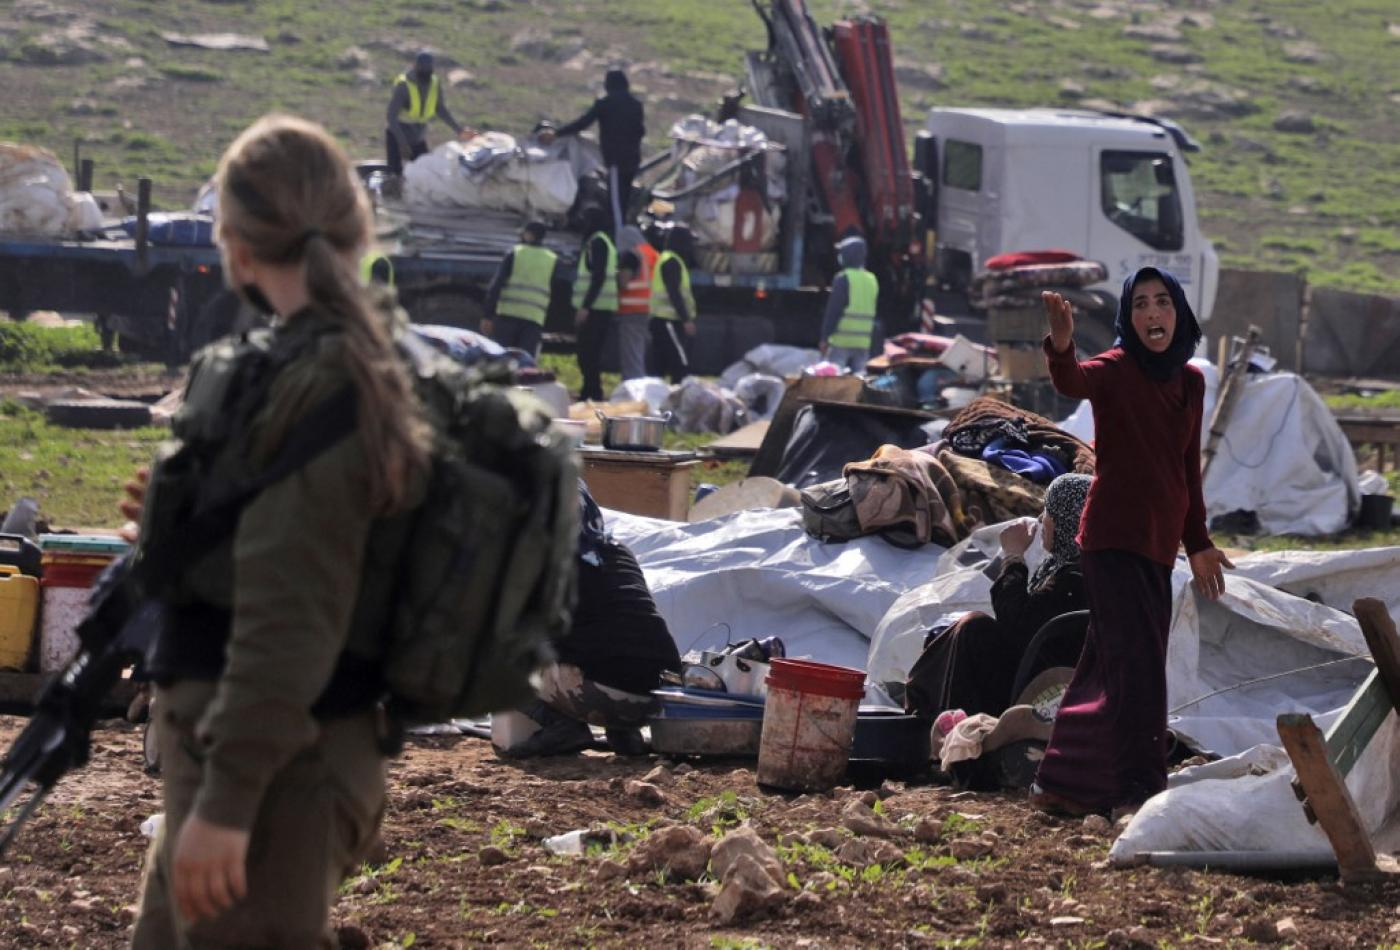 UN experts call on Israel to stop repeated demolition of rural Palestinian community